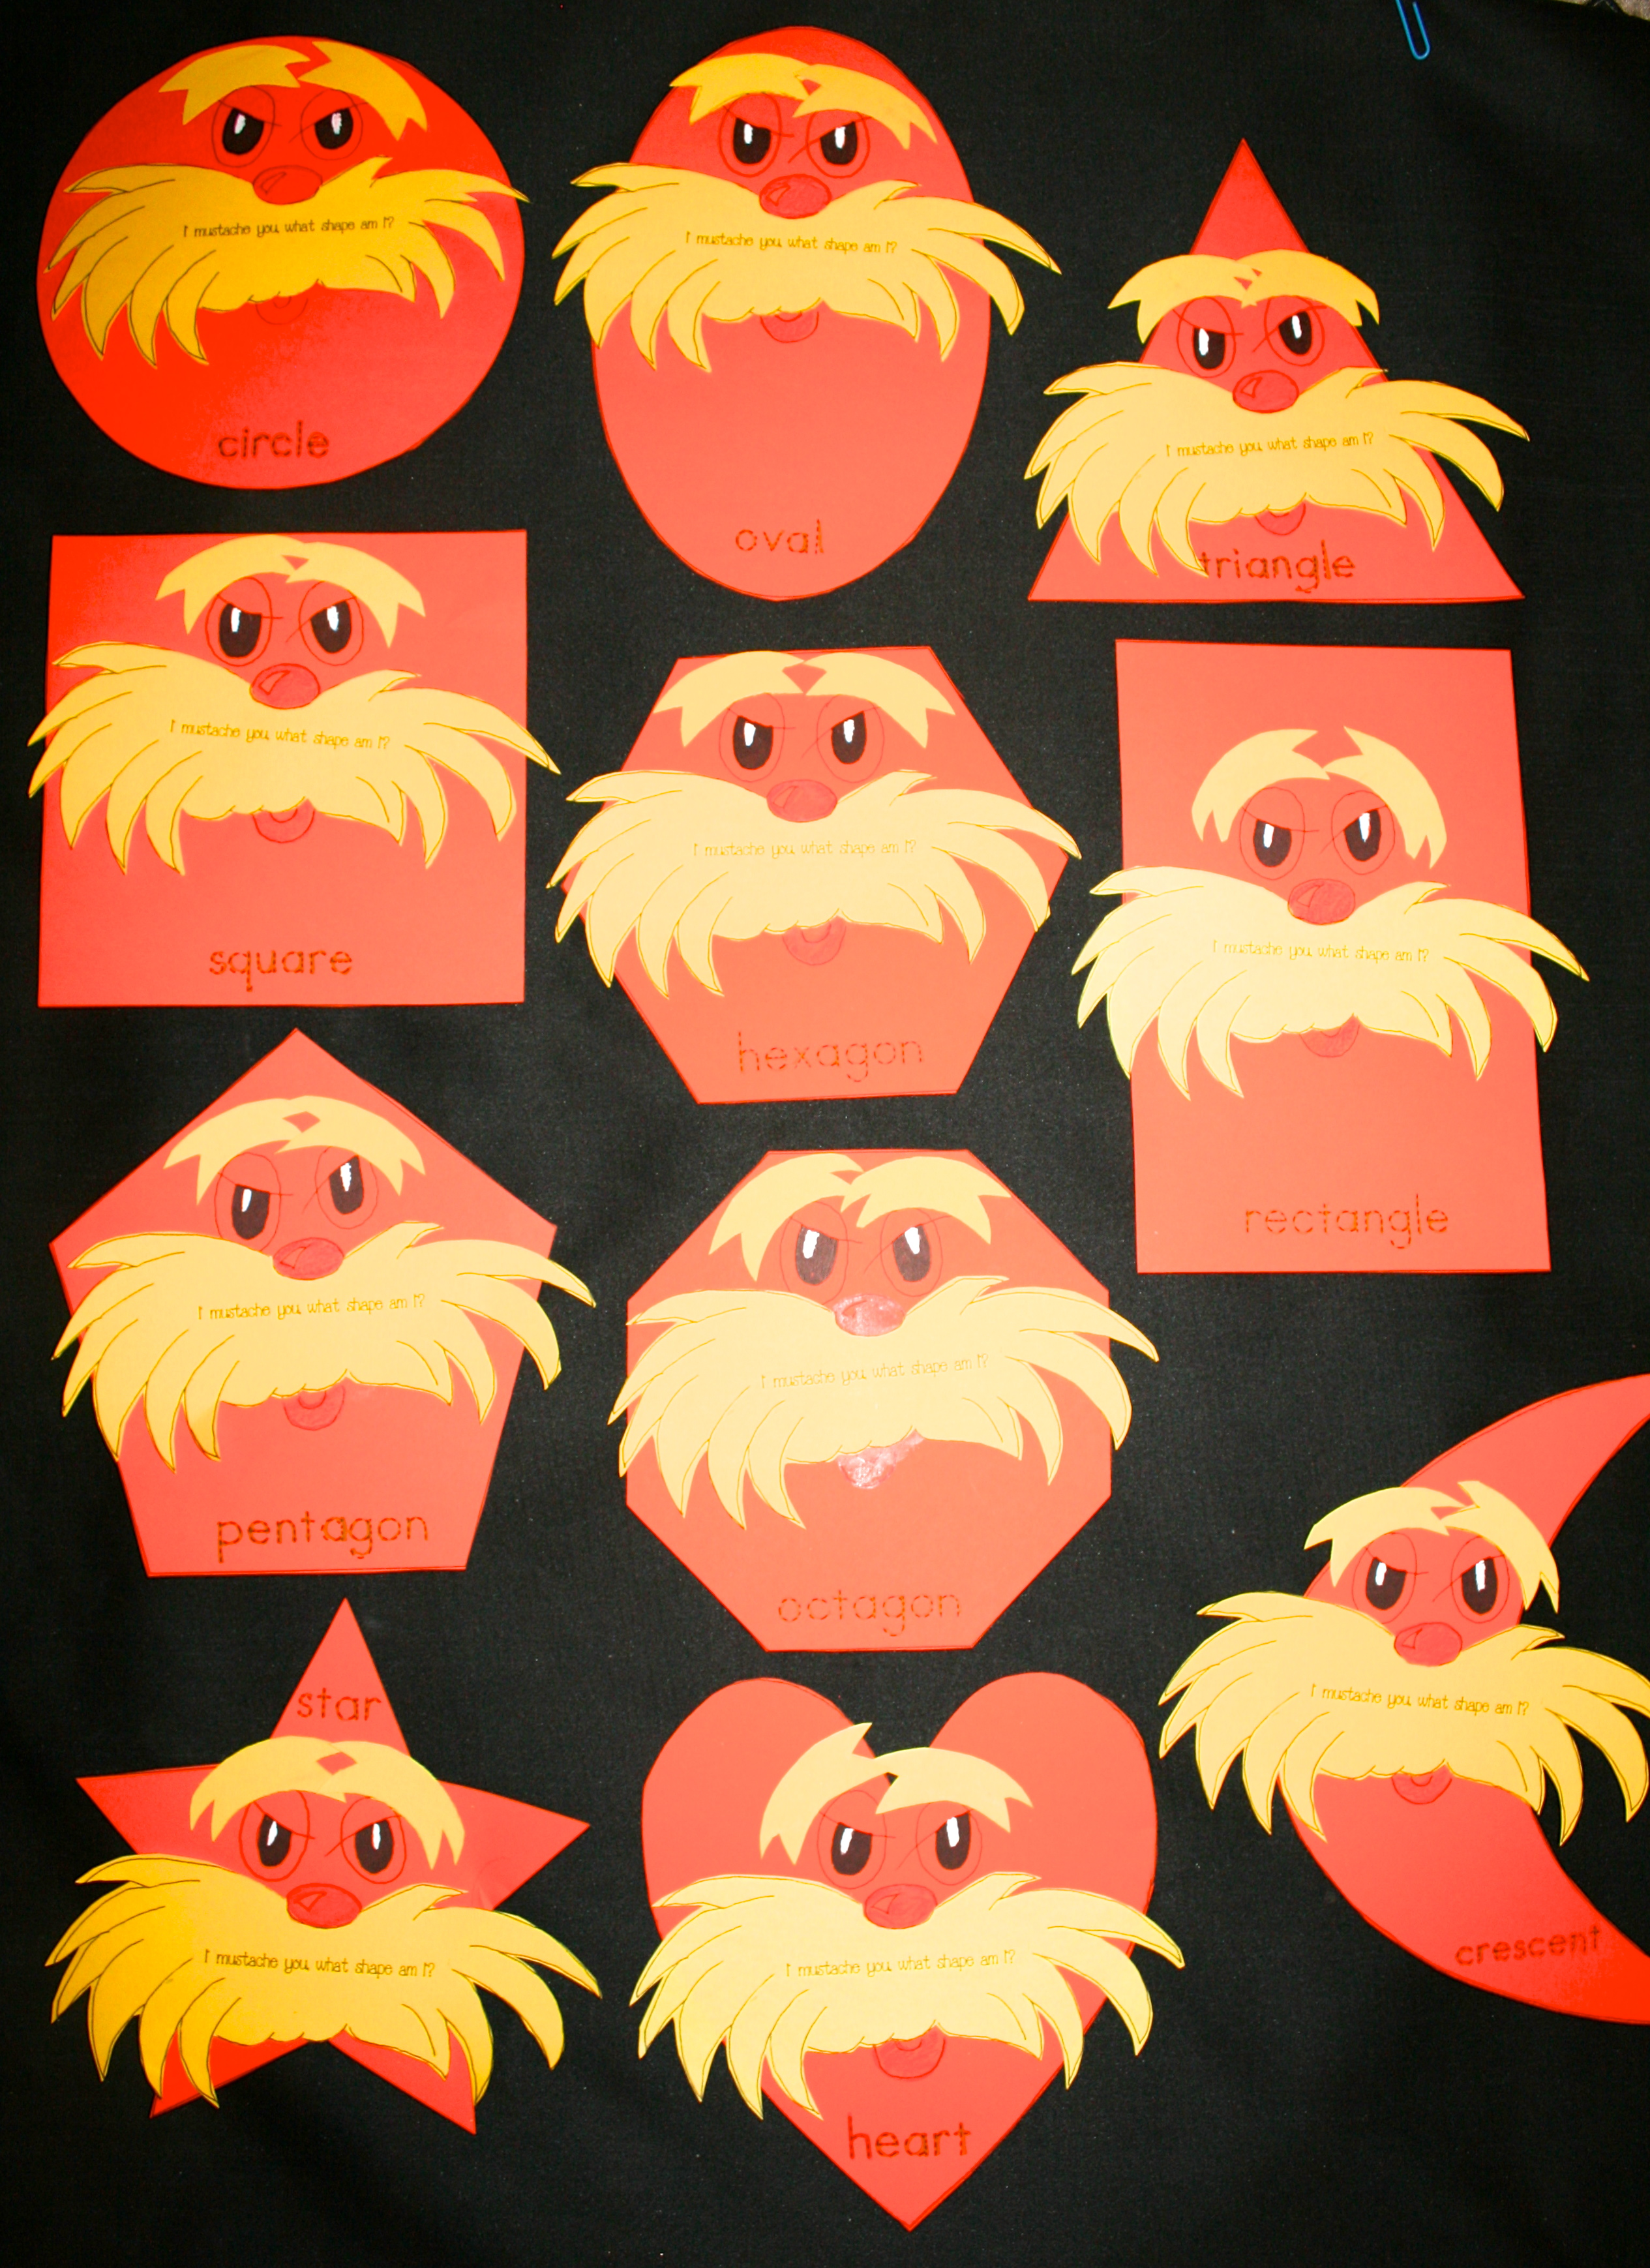 lorax activities, seuss common core, lorax common core, shape activities, hexagon activities, 2D shape lessons, easy reader booklets, shape booklet, lorax crafts, lorax shapes, lorax lessons, seuss crafts, seuss shapes, lorax common core, march bulletin boards, seuss bulletin boards, lorax bulletin boards, spring bulletin boards,